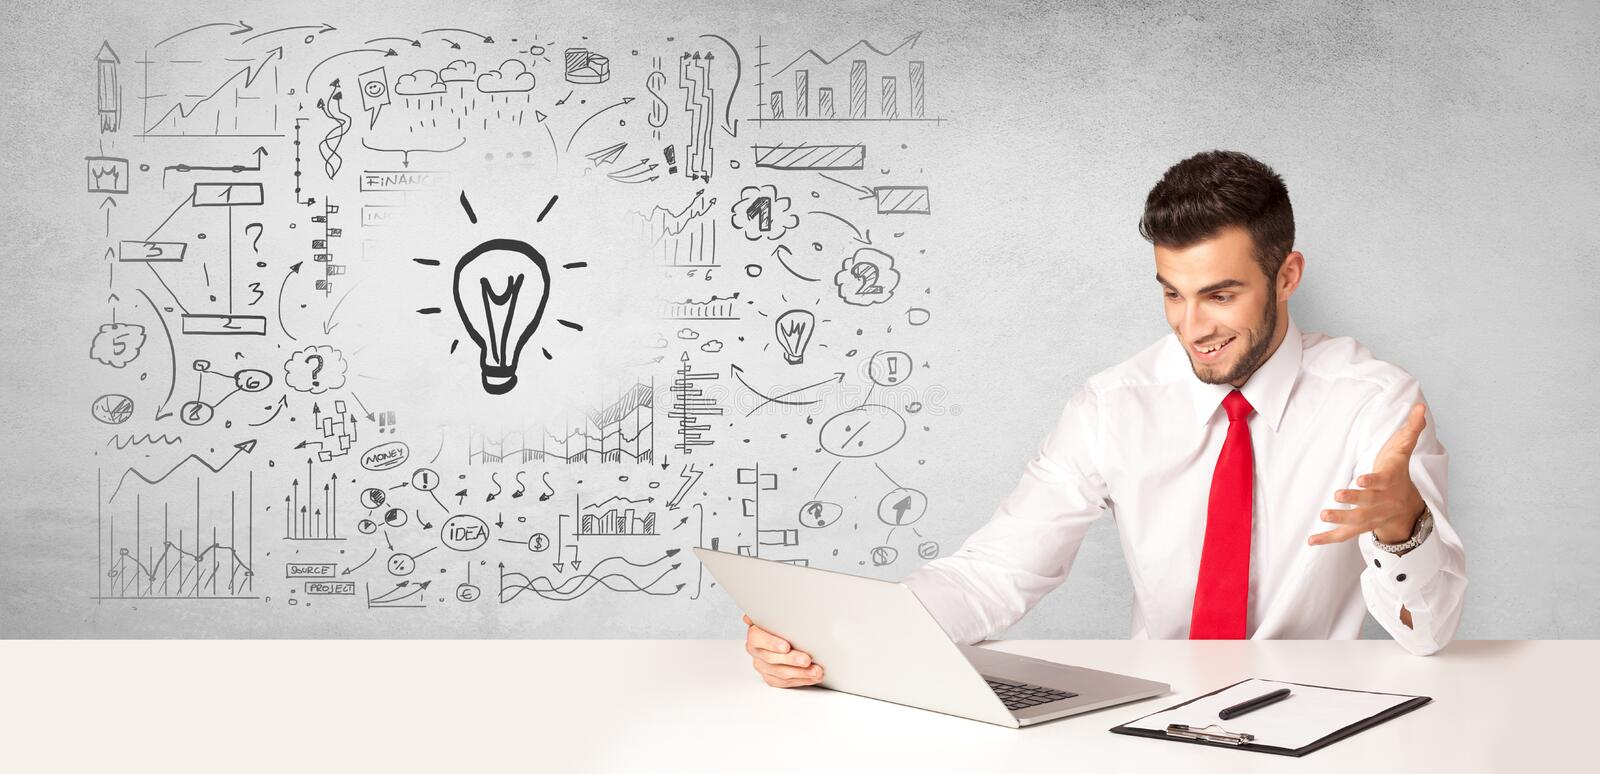 Business person with new idea concept. Young business person with new idea and workflow concept stock photography